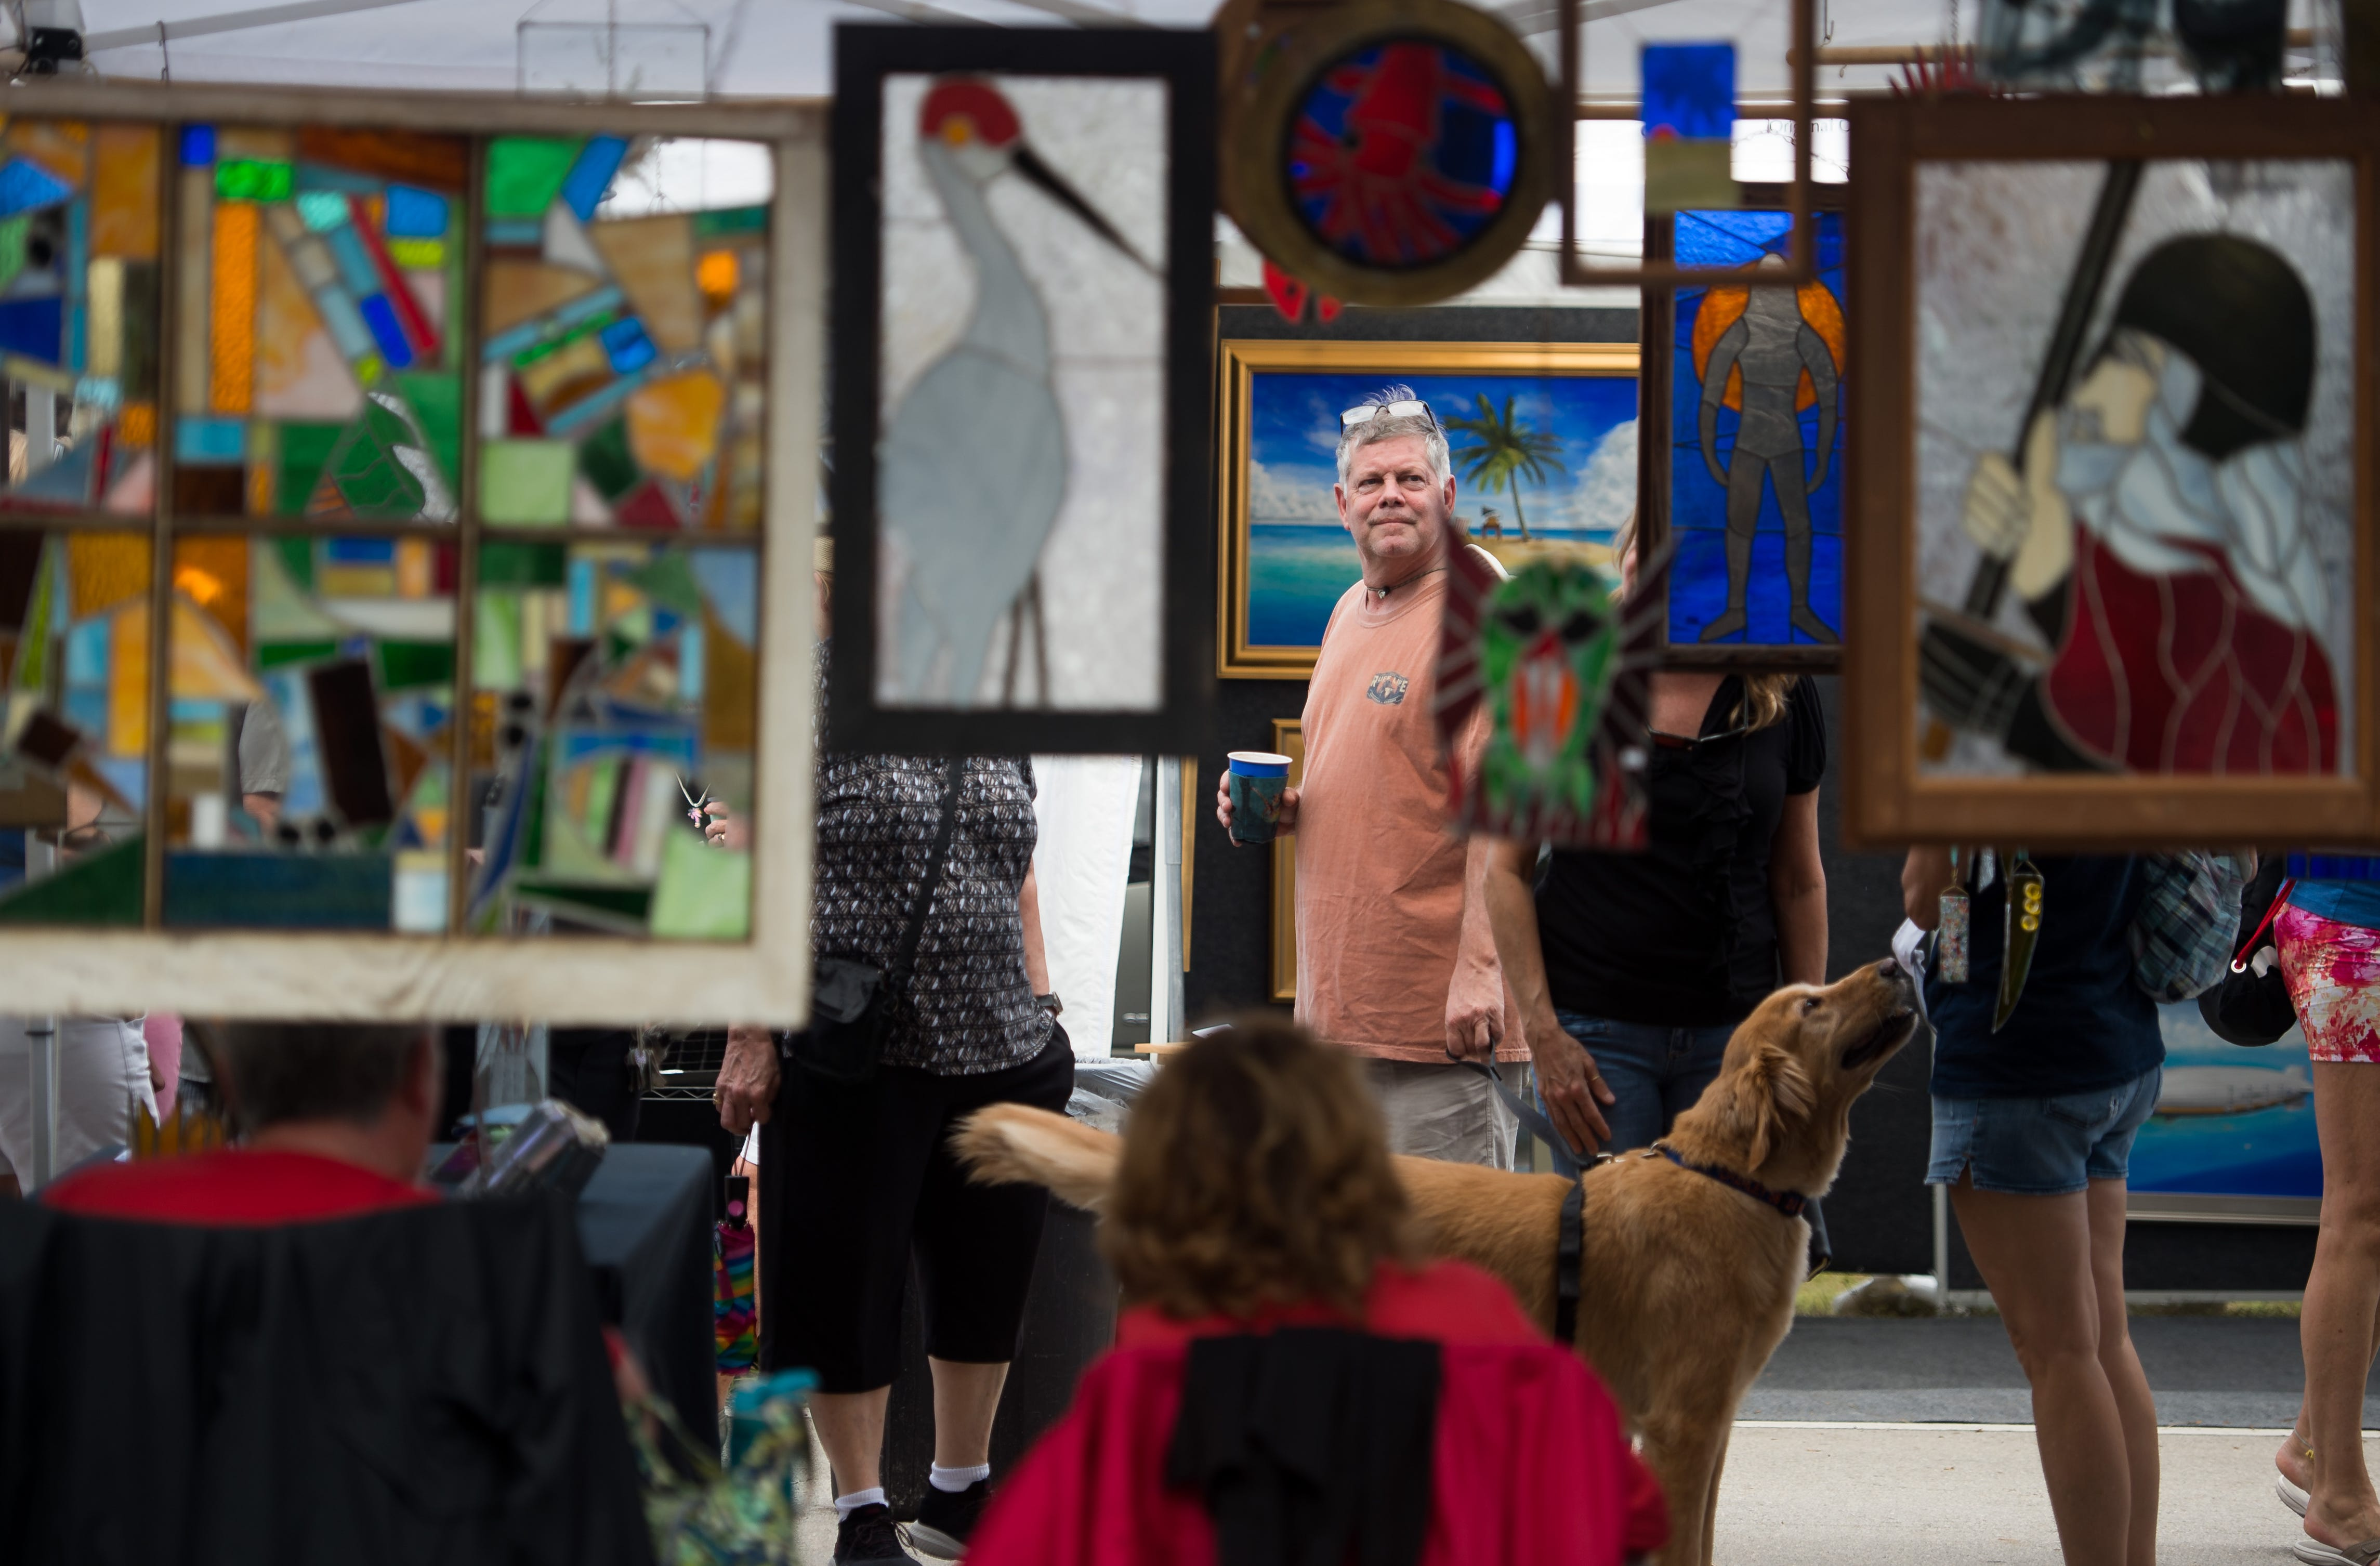 "Scott Meyer (center), of Jupiter, stops with his dog, Charlie, to admire glass artwork by Kenneth Tipping, of Palm Beach Gardens, at the 18th annual Hobe Sound Festival of the Arts along Dixie Highway between Bridge Road and Venus Street on Saturday, Feb. 2, 2019, in Hobe Sound. Meyer, who was attending the event with his wife and friends from Stuart, said, ""Any event that we can walk the streets and drink beer, and take the dog, we go do."" He added they would most likely buy art later. ""I love supporting these hardworking people who come down here…we never leave empty handed."" The free outdoor event, which features artists and craft artisans from around the country, continues from 10 a.m. to 5 p.m. on Sunday."